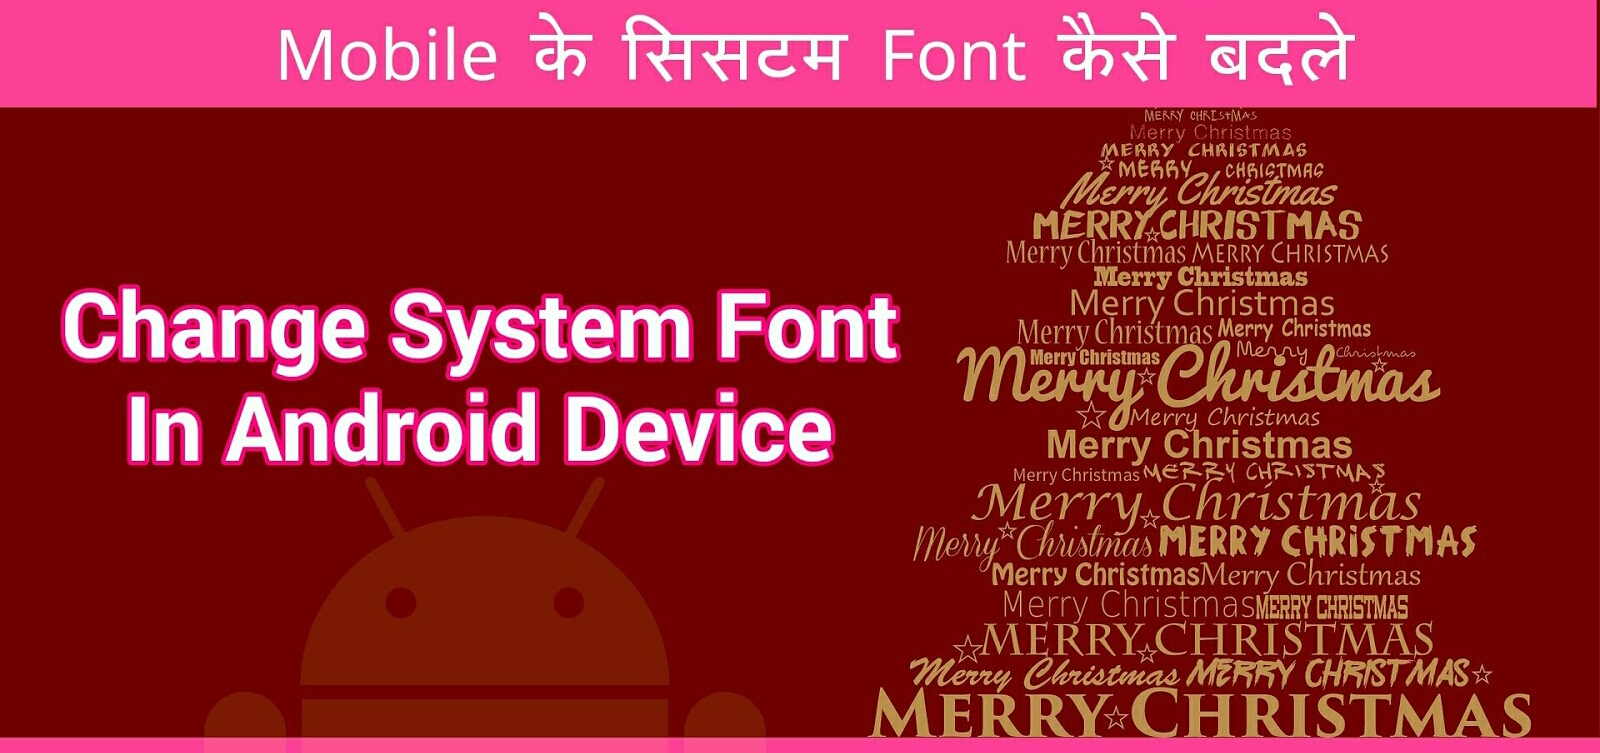 how to change system font in android